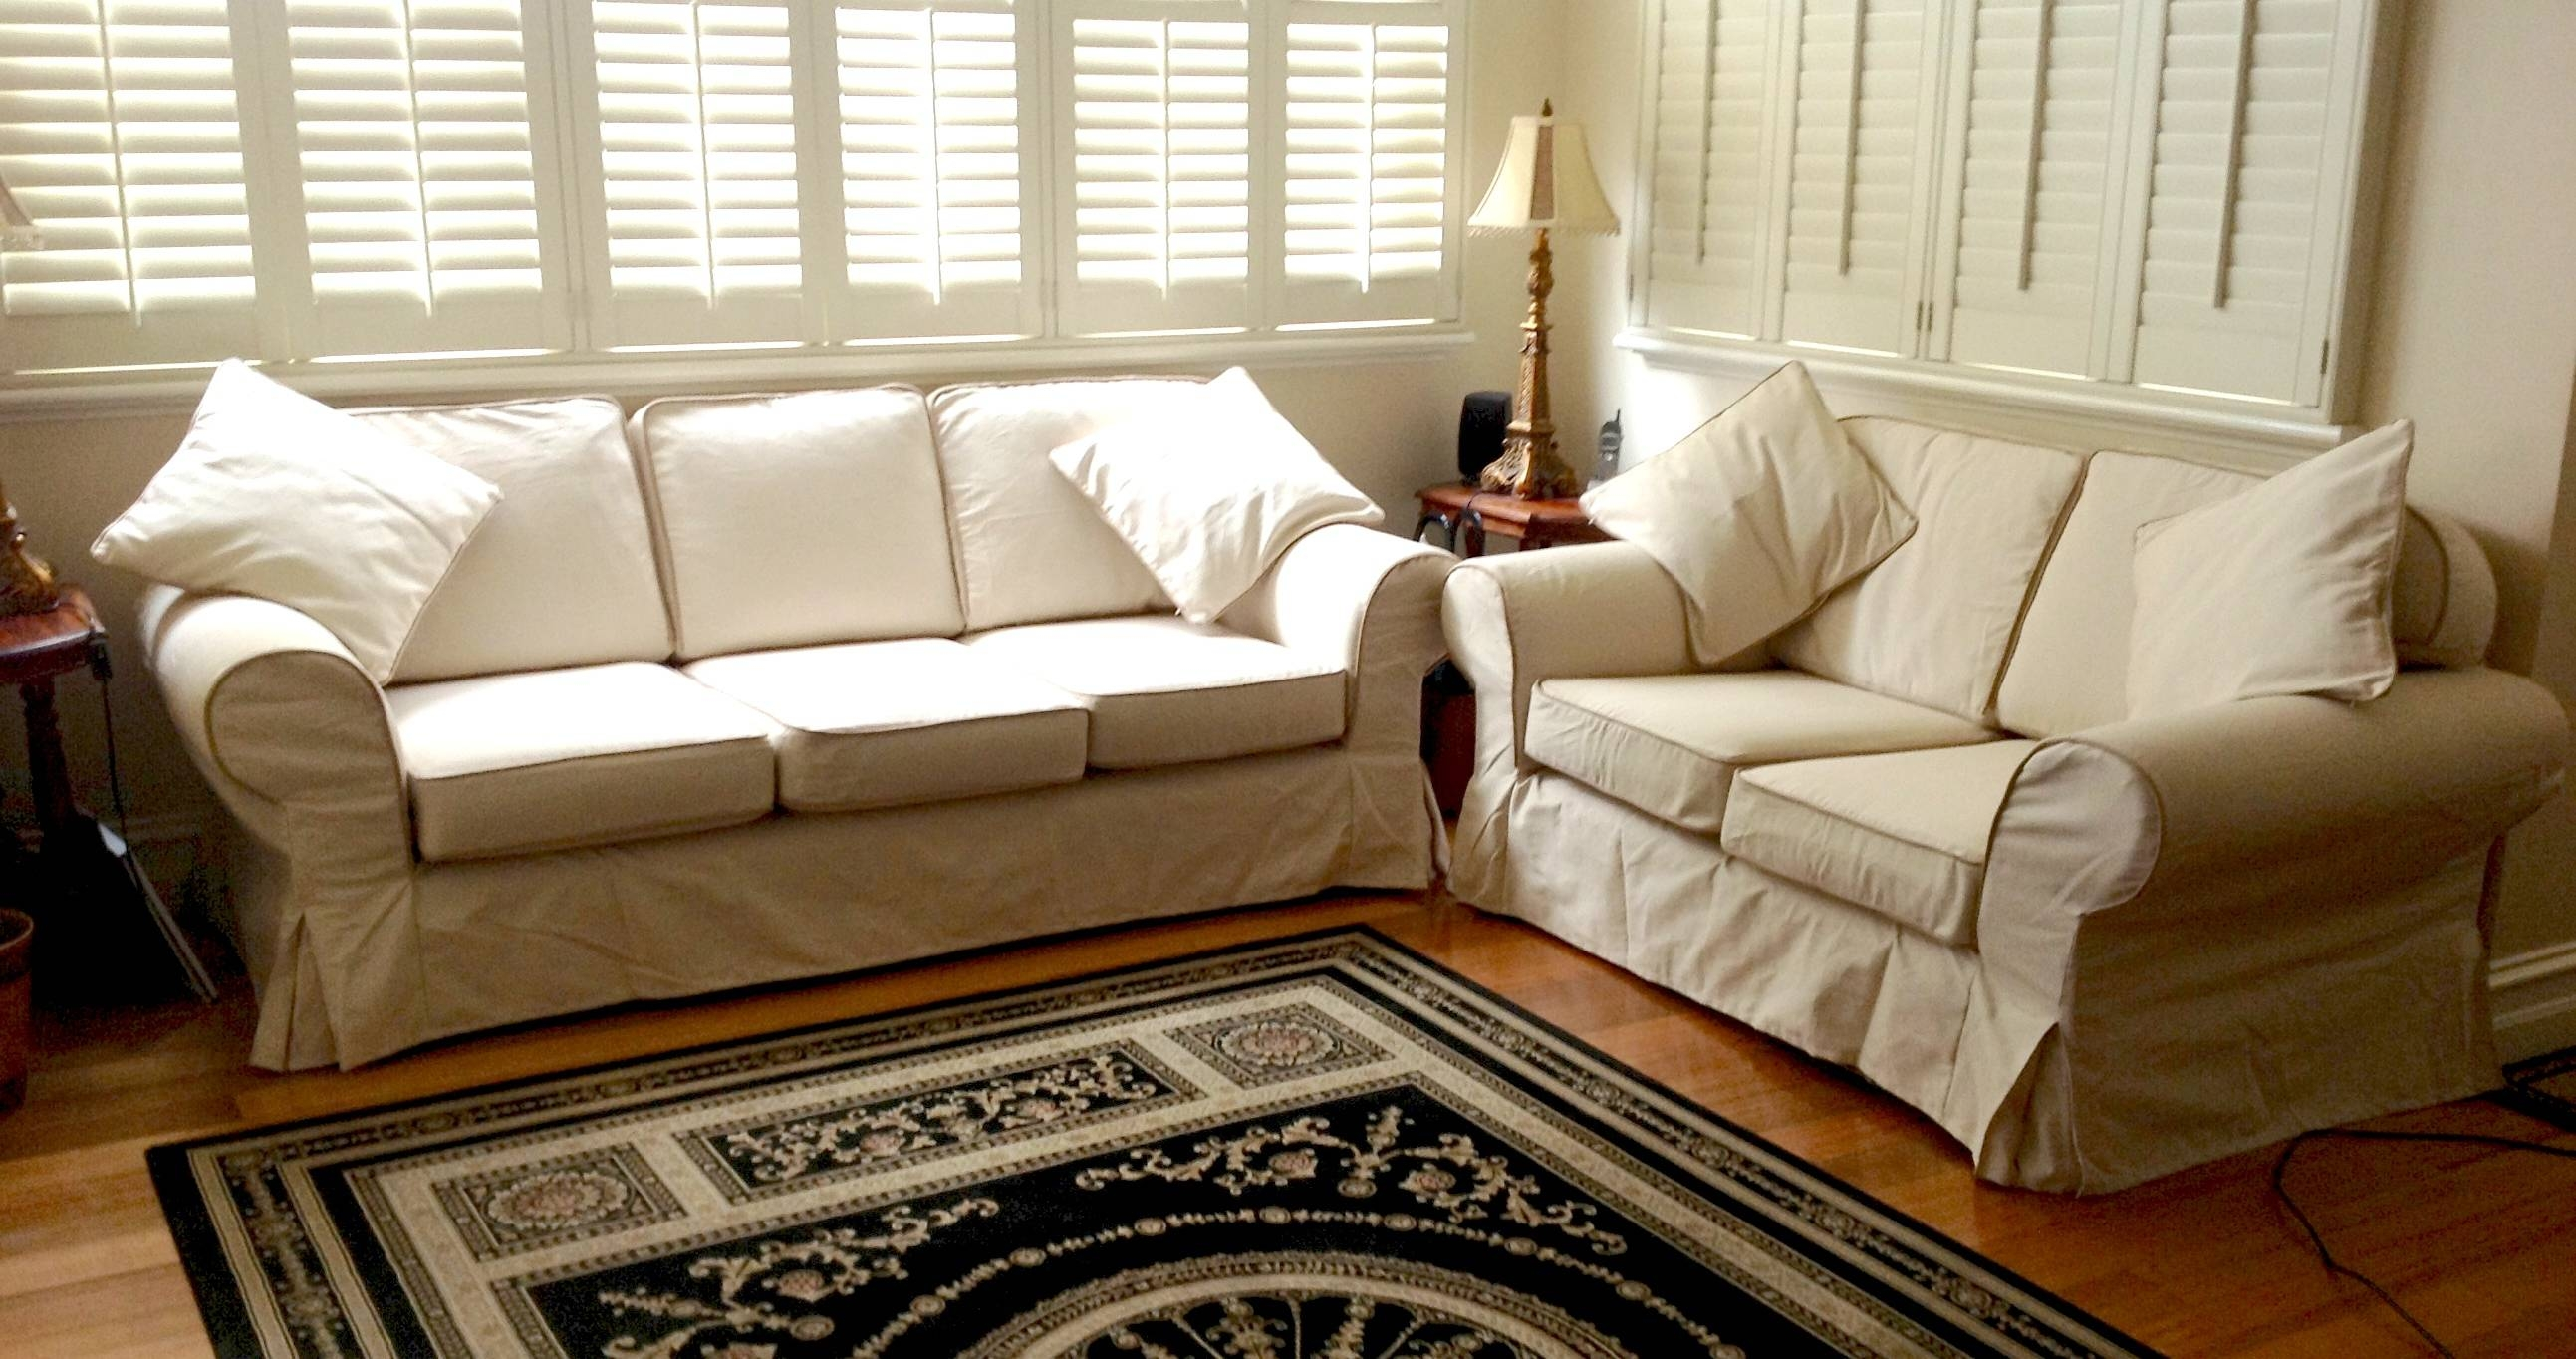 Custom Slipcovers And Couch Cover For Any Sofa Online throughout Canvas Sofas Covers (Image 4 of 15)